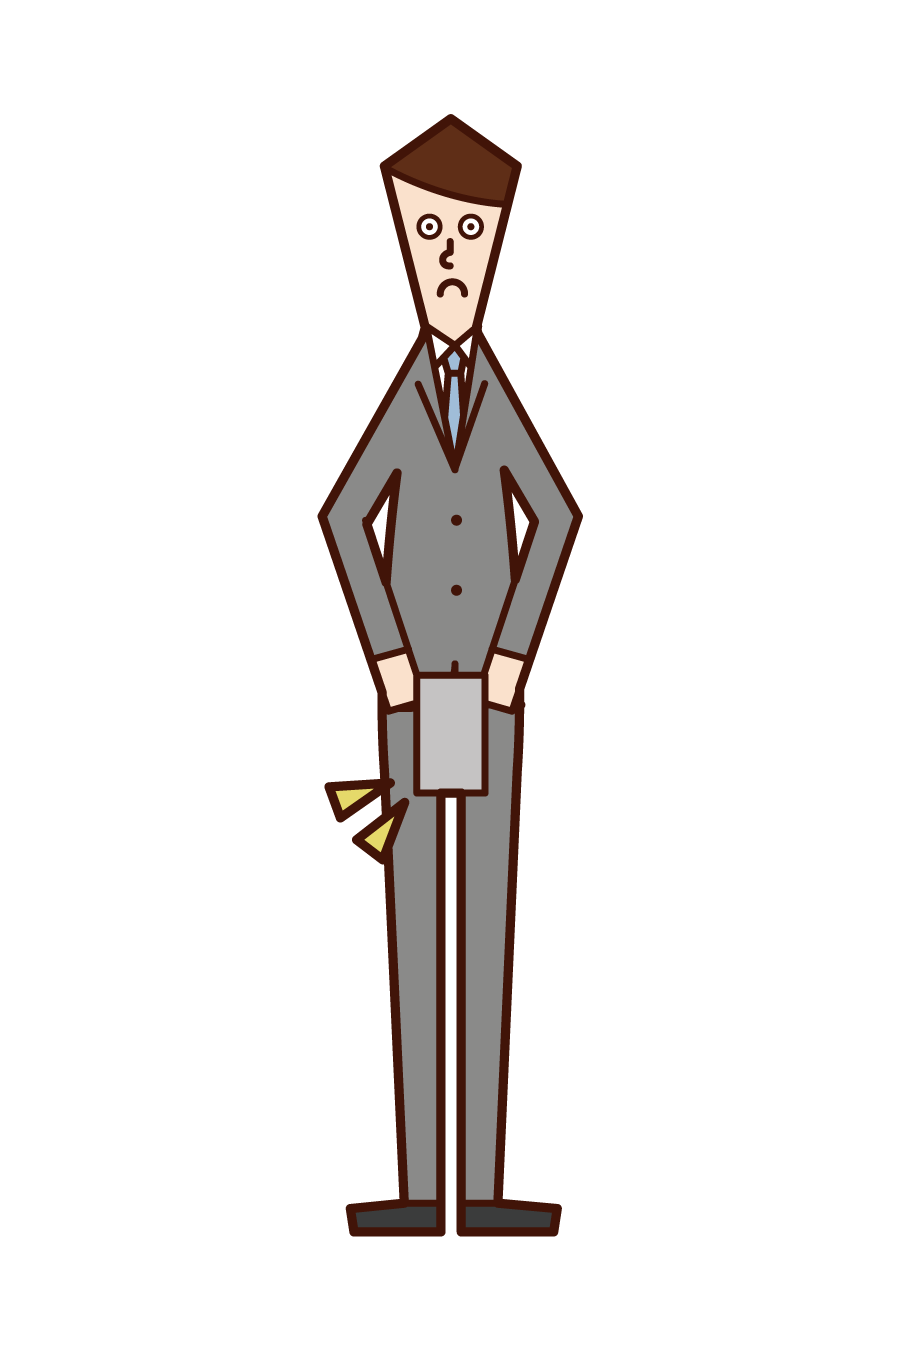 Illustration of the person (male) who submits his resignation